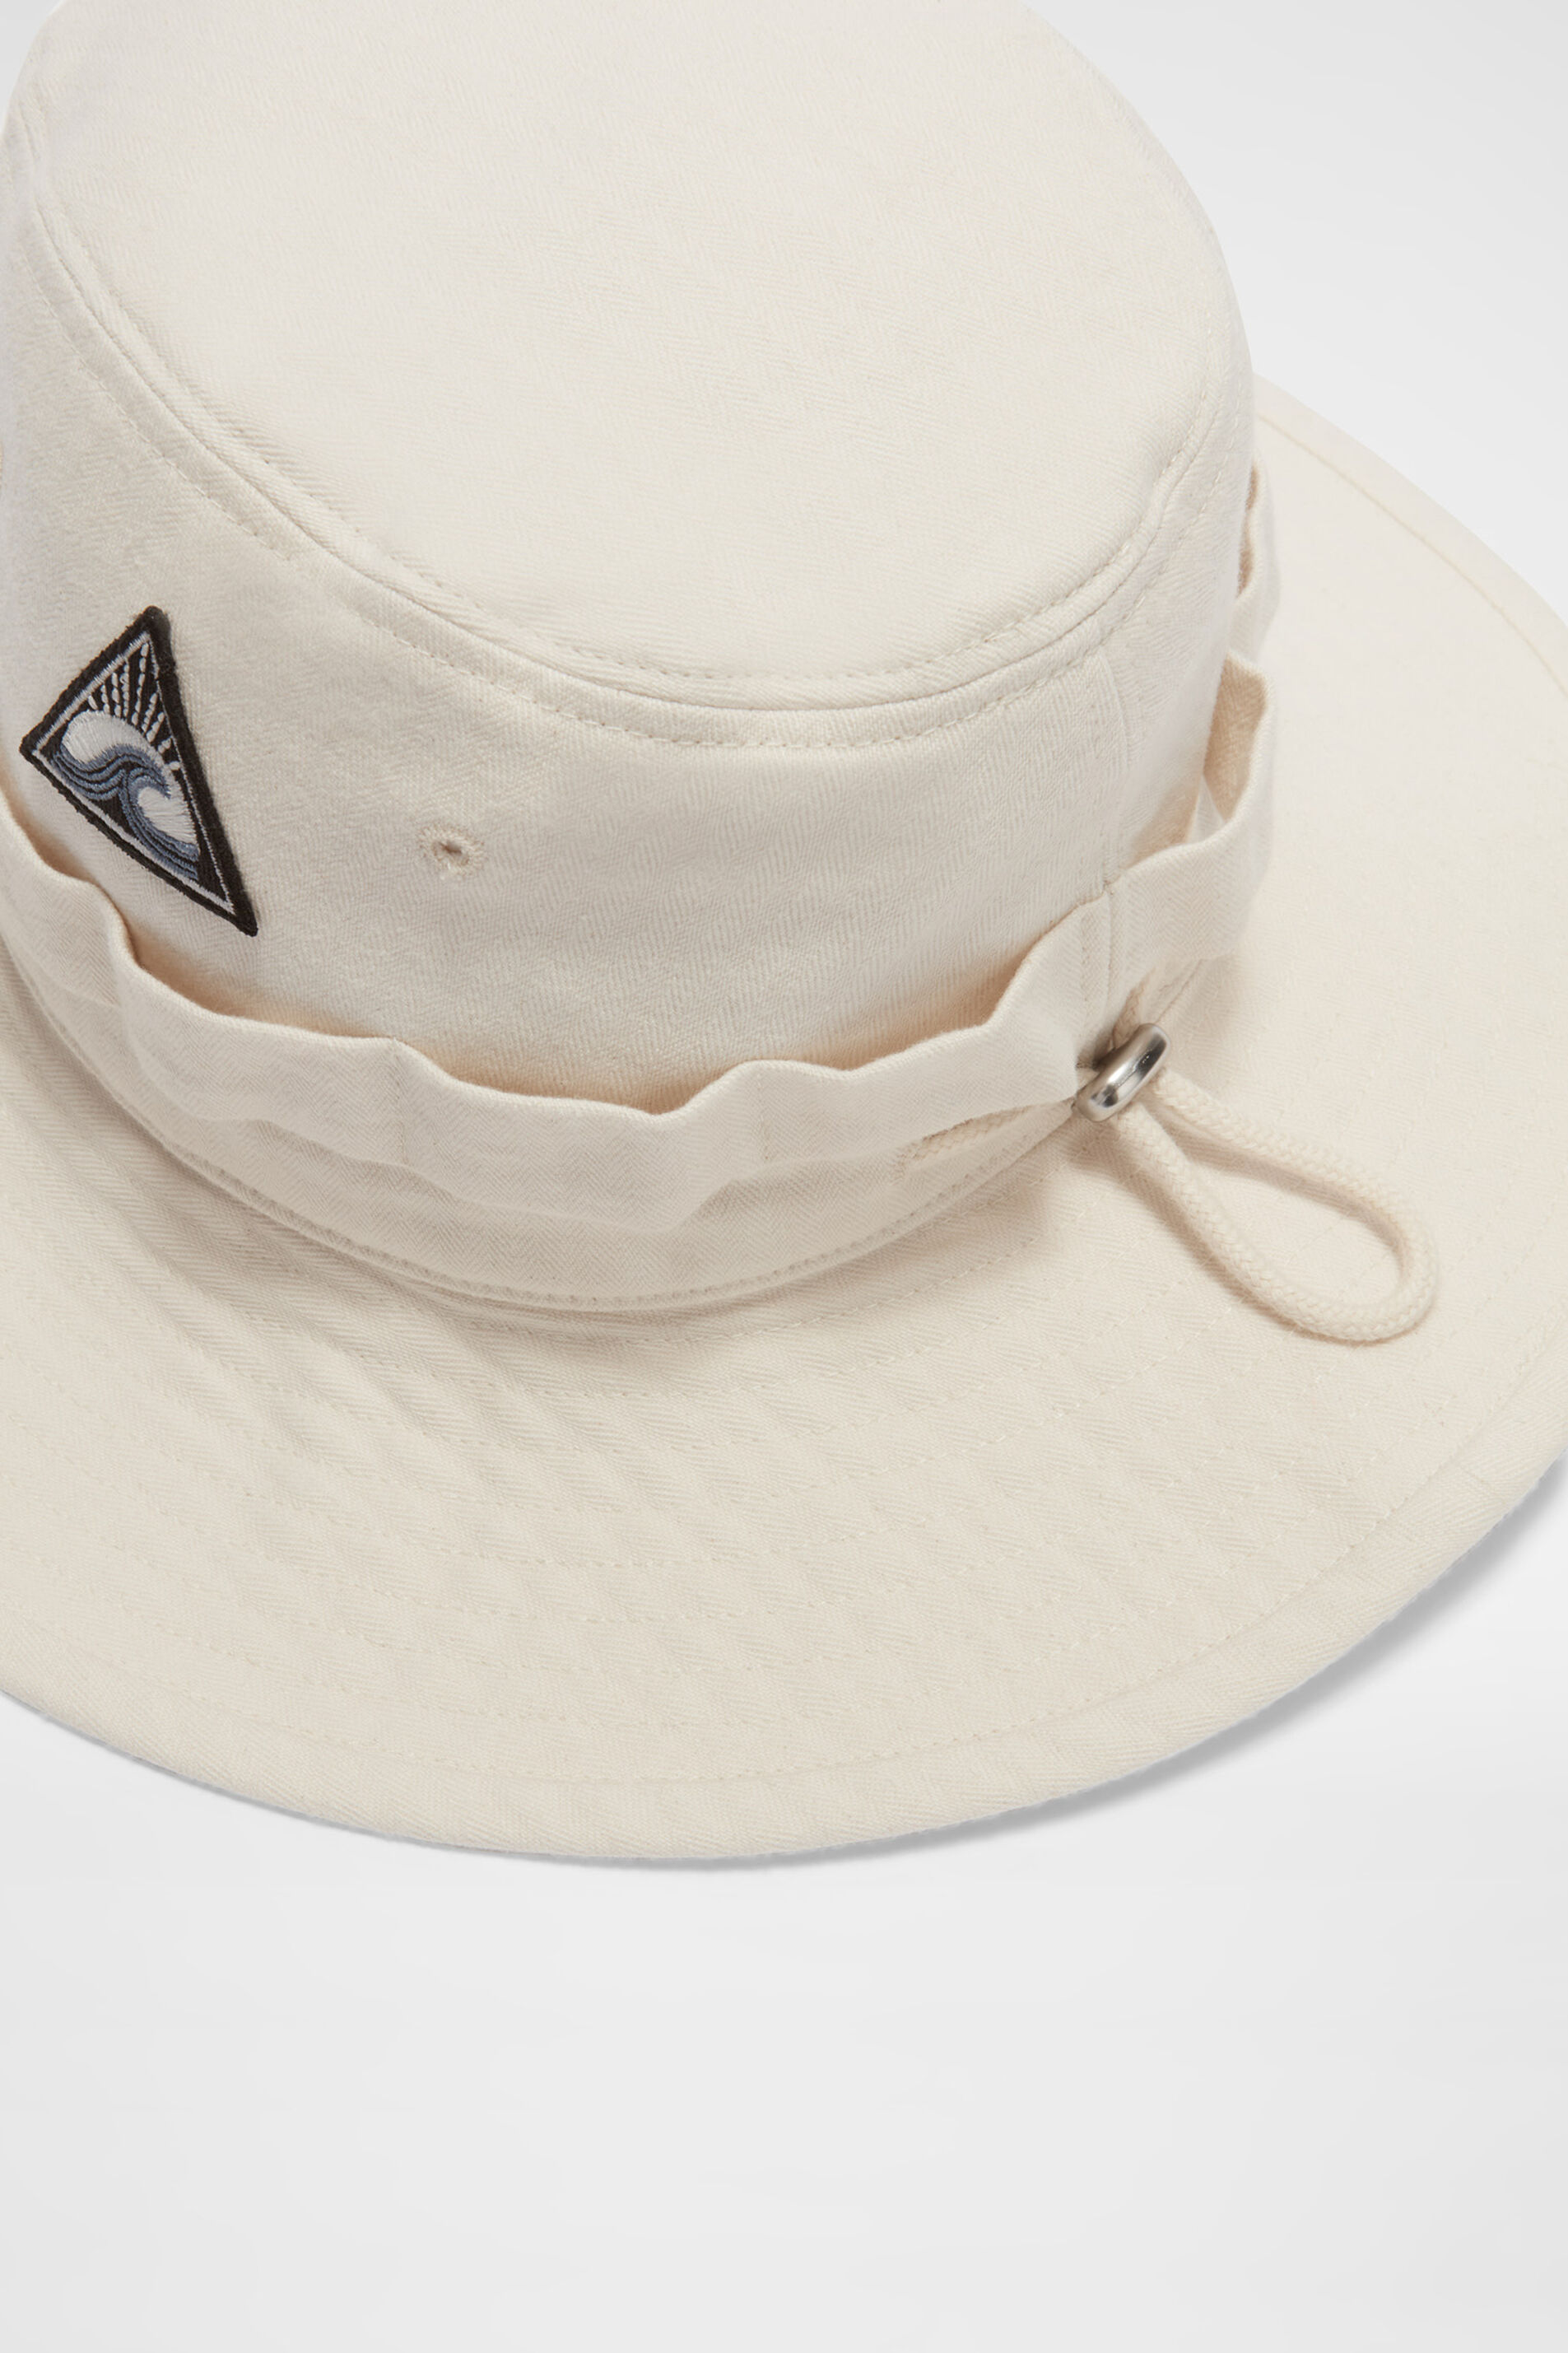 Hat, beige, large